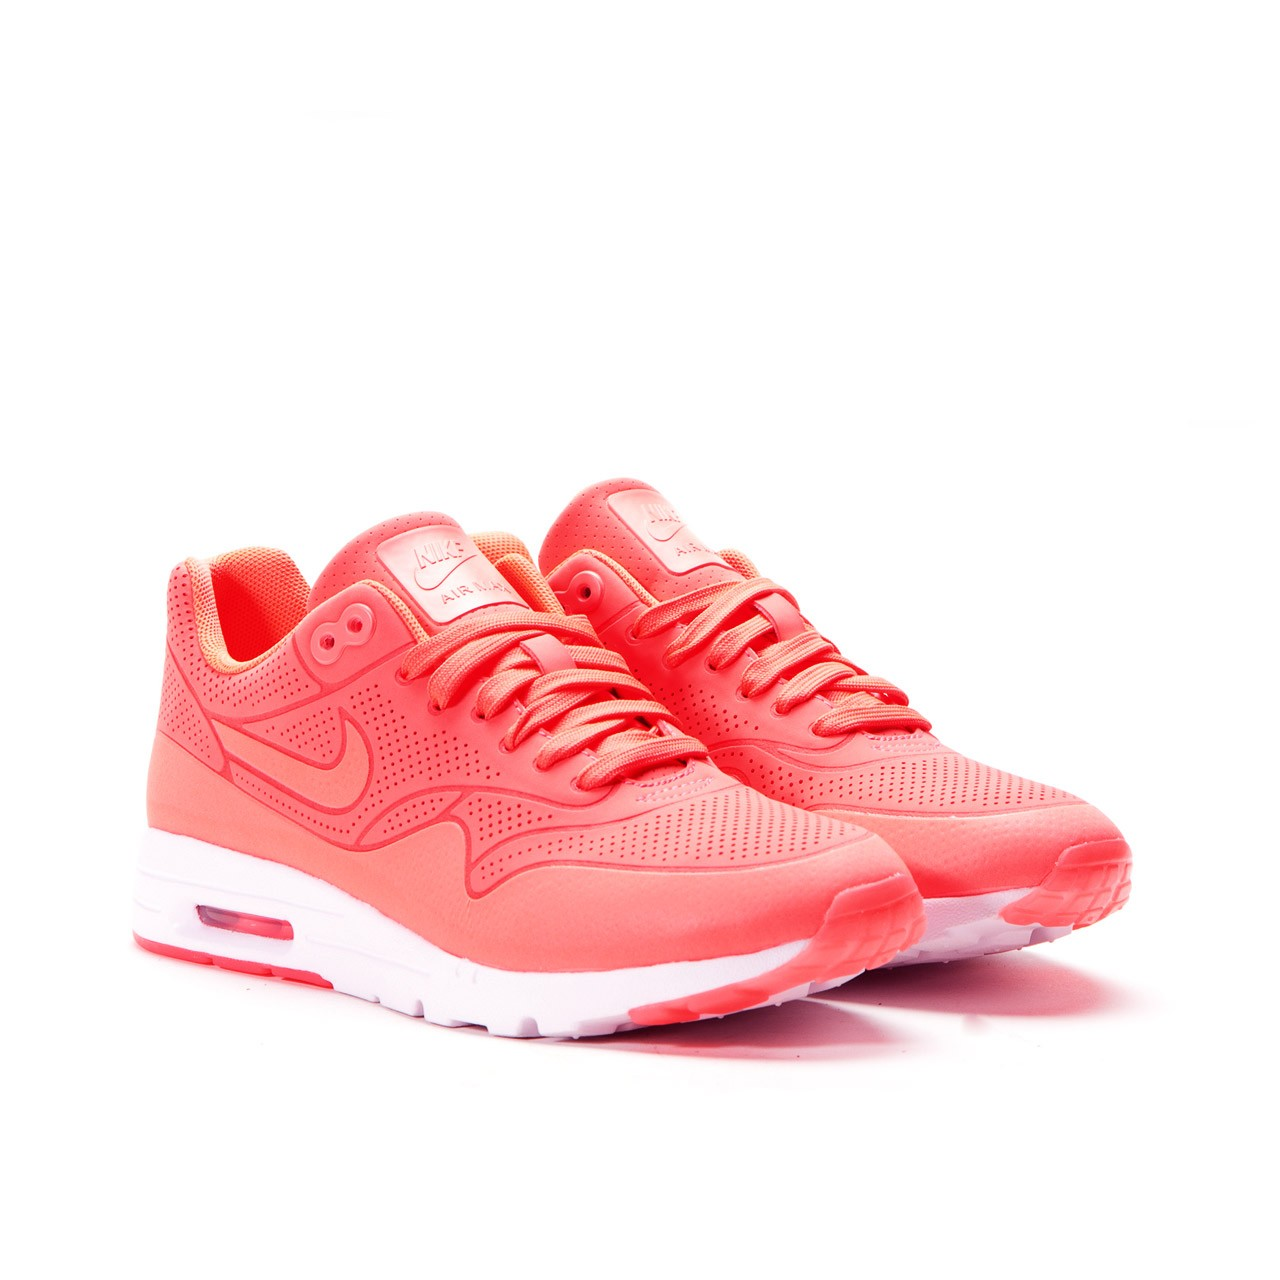 pretty nice c48a6 83d58 ... amazon the nike air max 1 ultra moire hot lava white retails at 144.90  approximately rm565